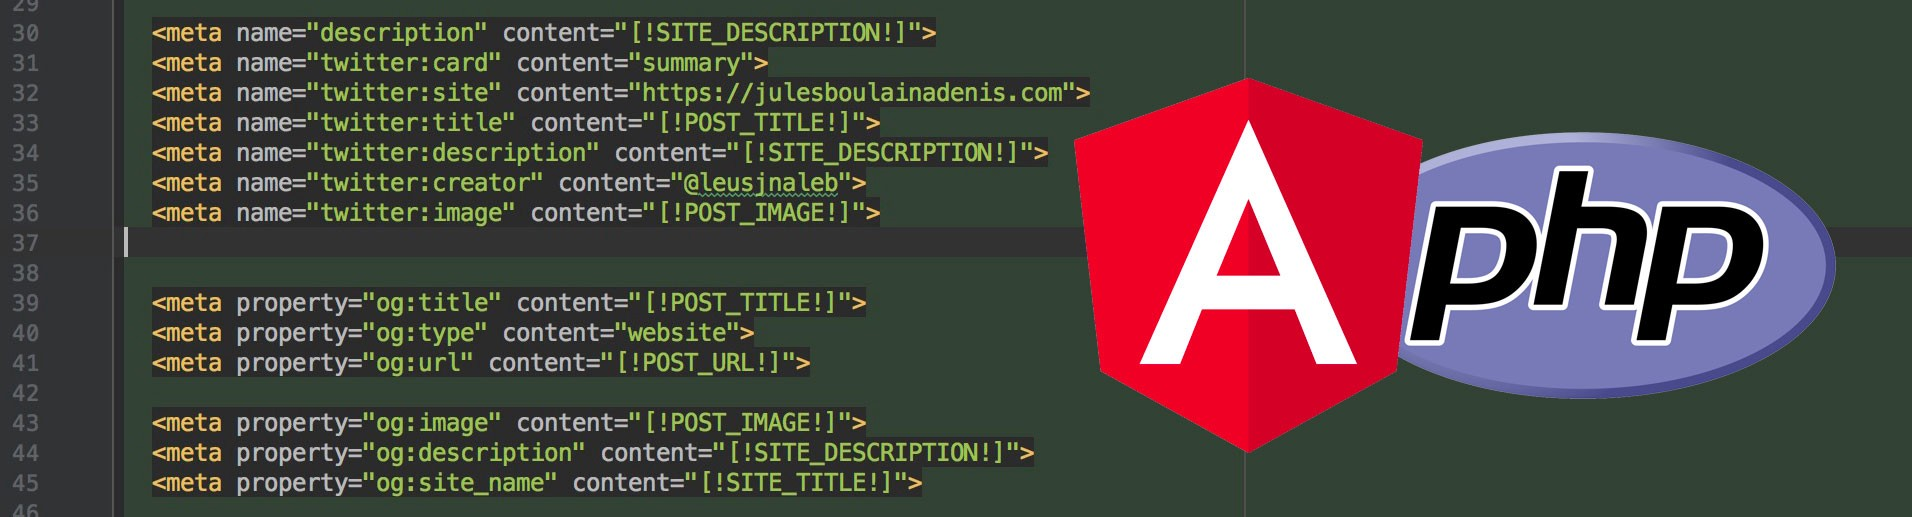 Angular 6: SEO Meta tags for Twitter/Facebook loaded through